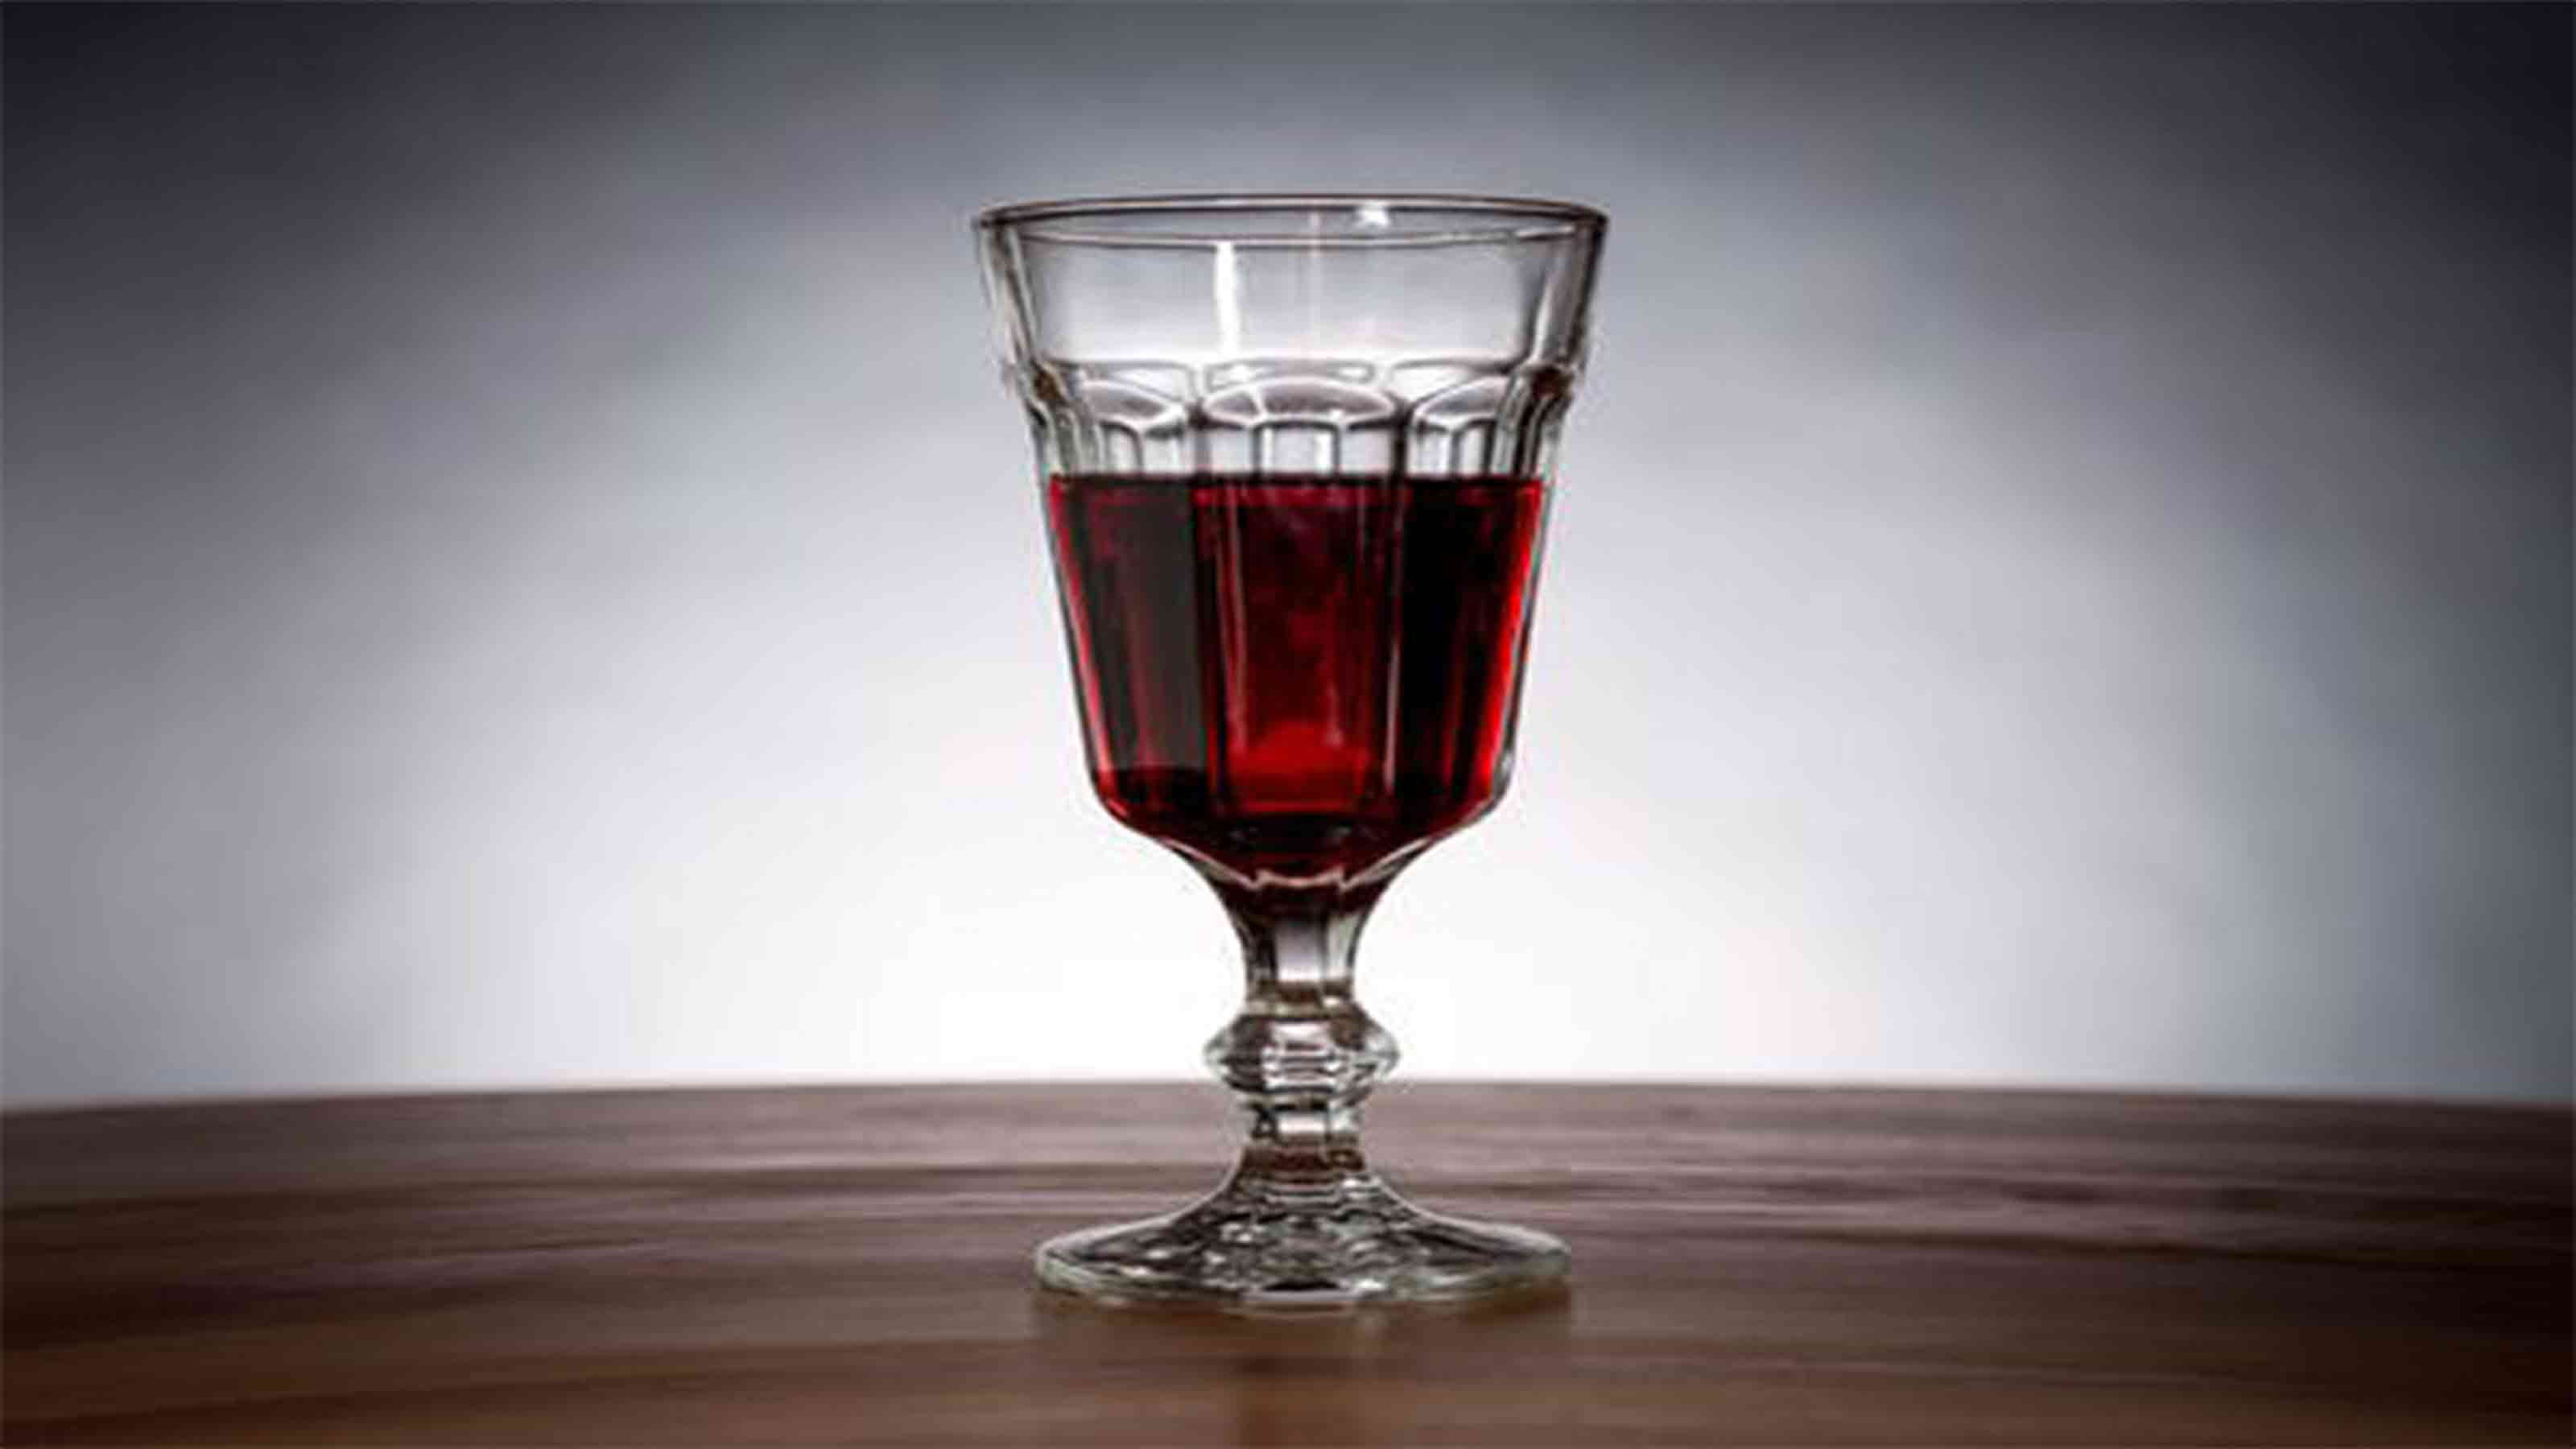 The Five Cups of Passover